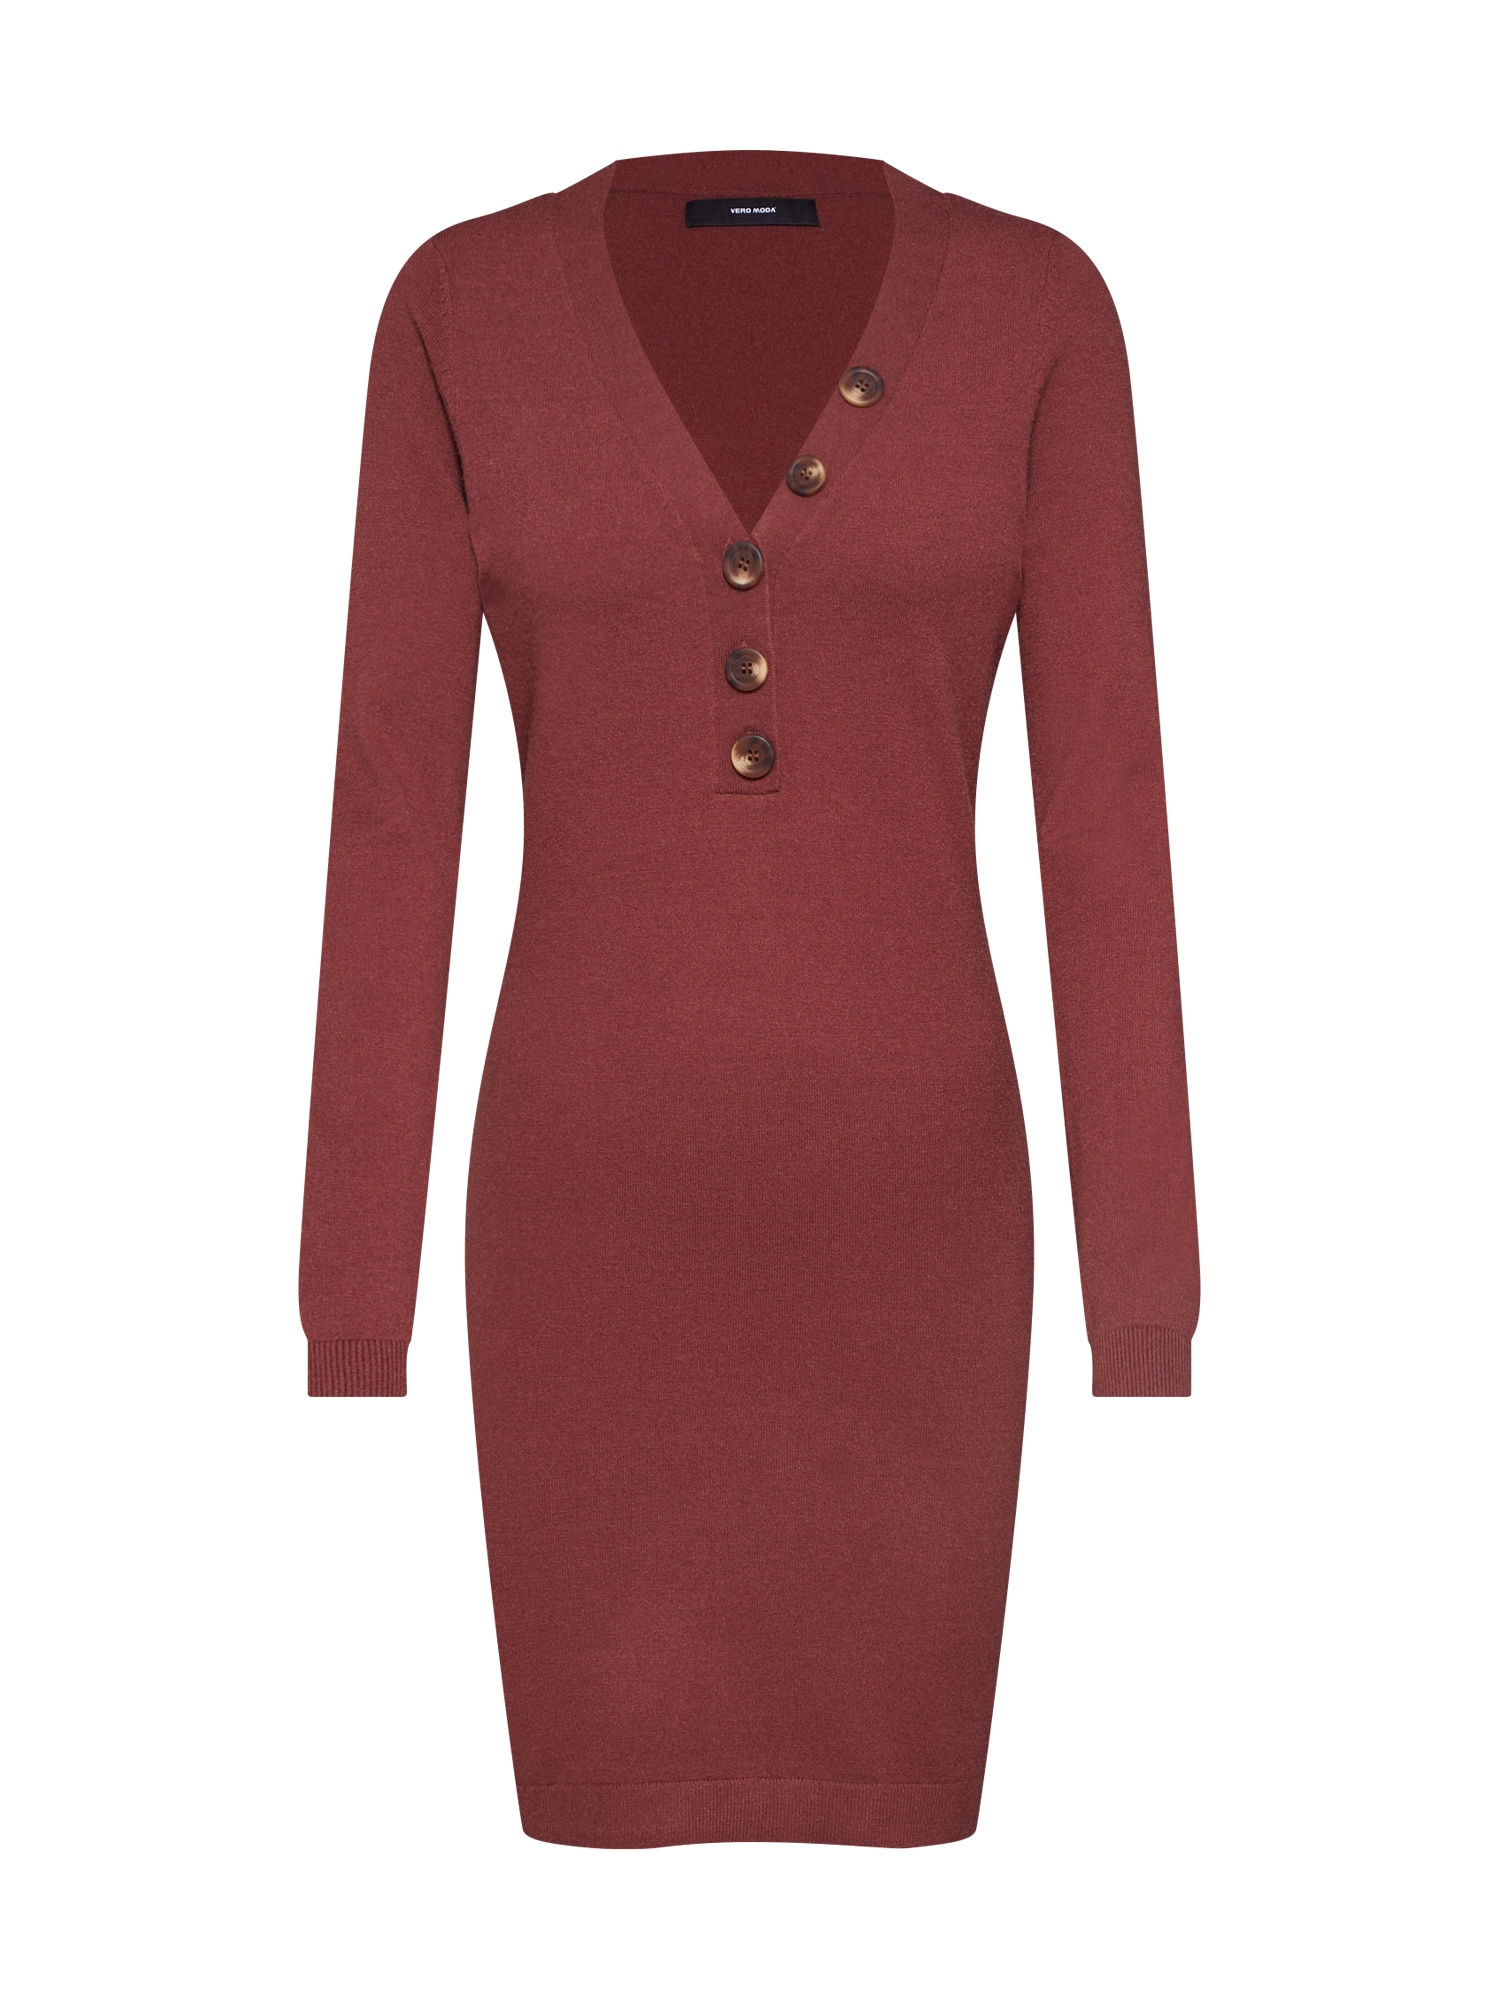 Úpletové šaty VMCHIP KARIS LS V-NECK BUTTON DRESS BOO rezavě hnědá VERO MODA